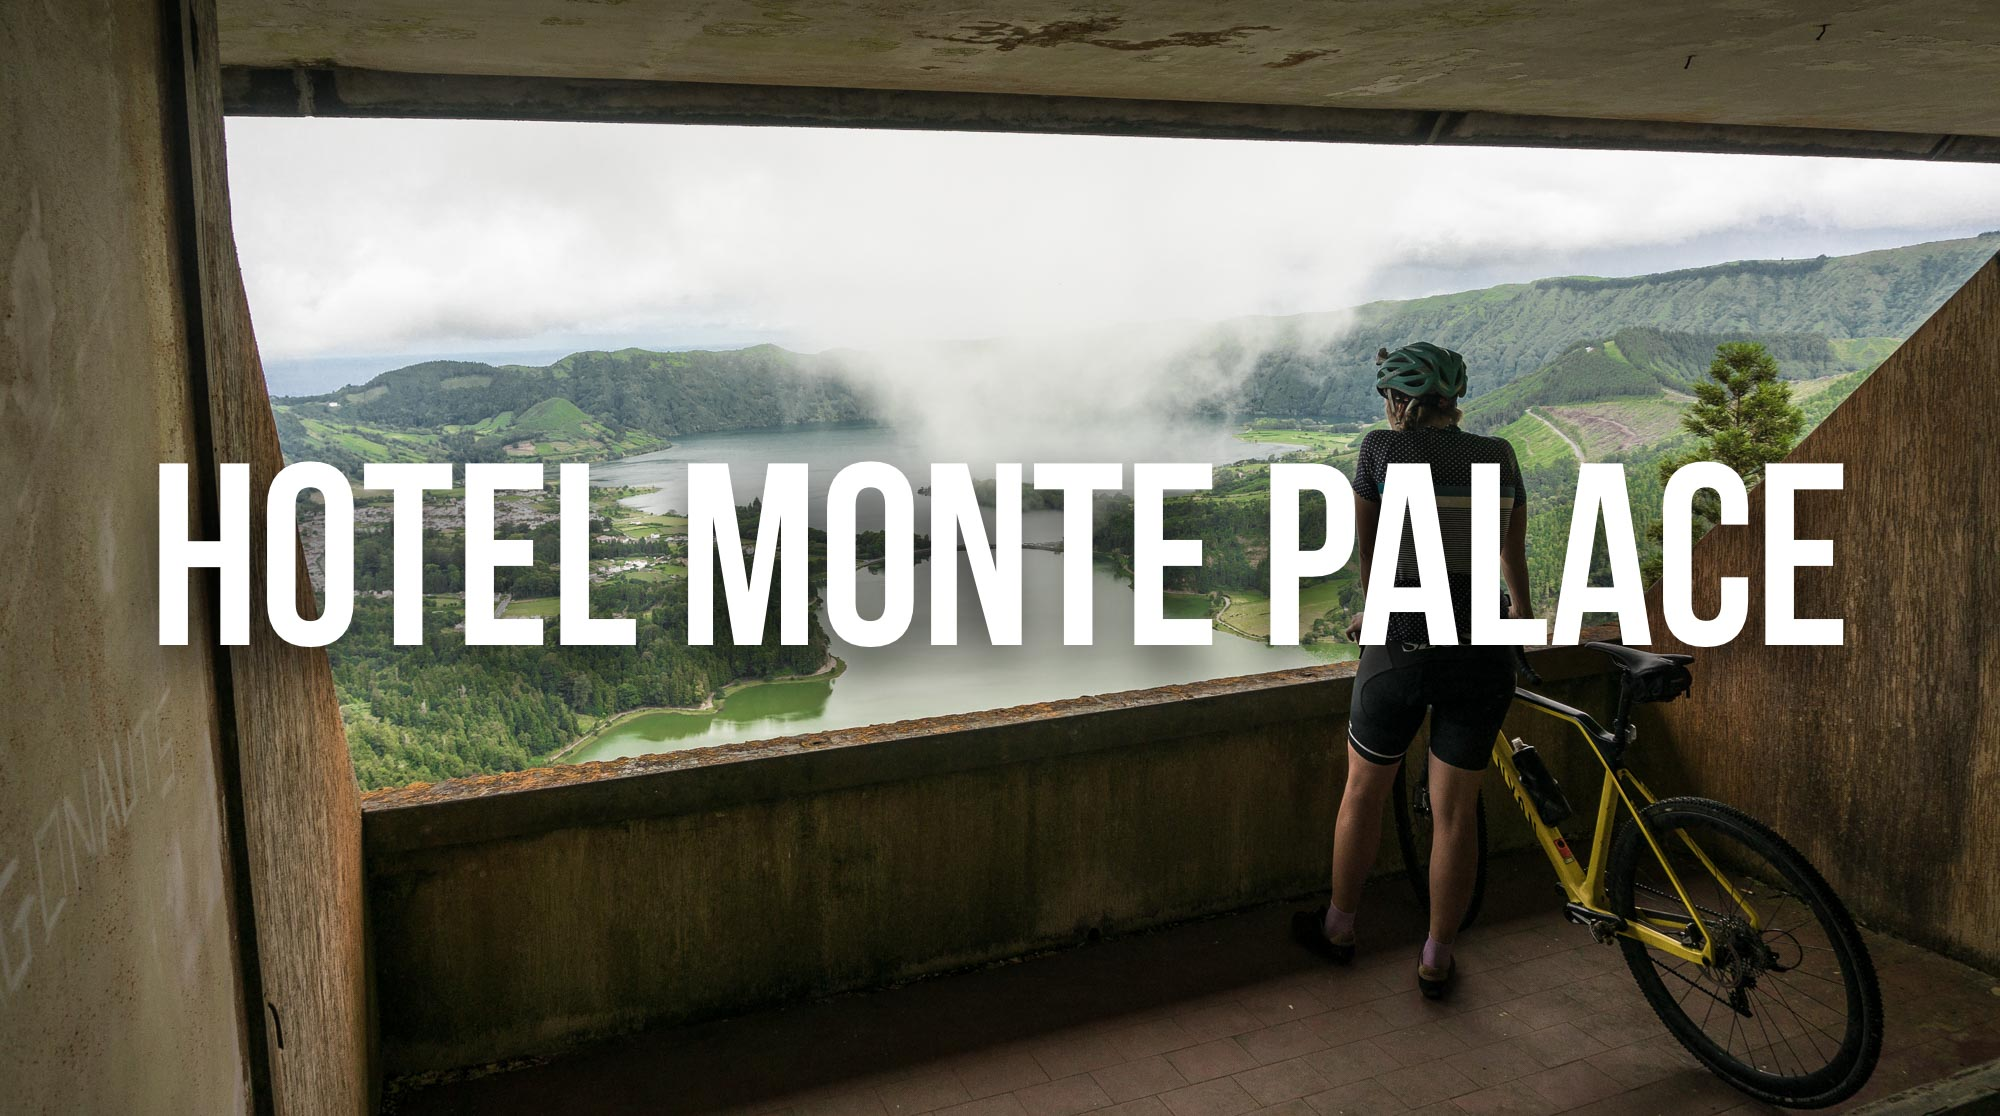 Hotel Monte Palace